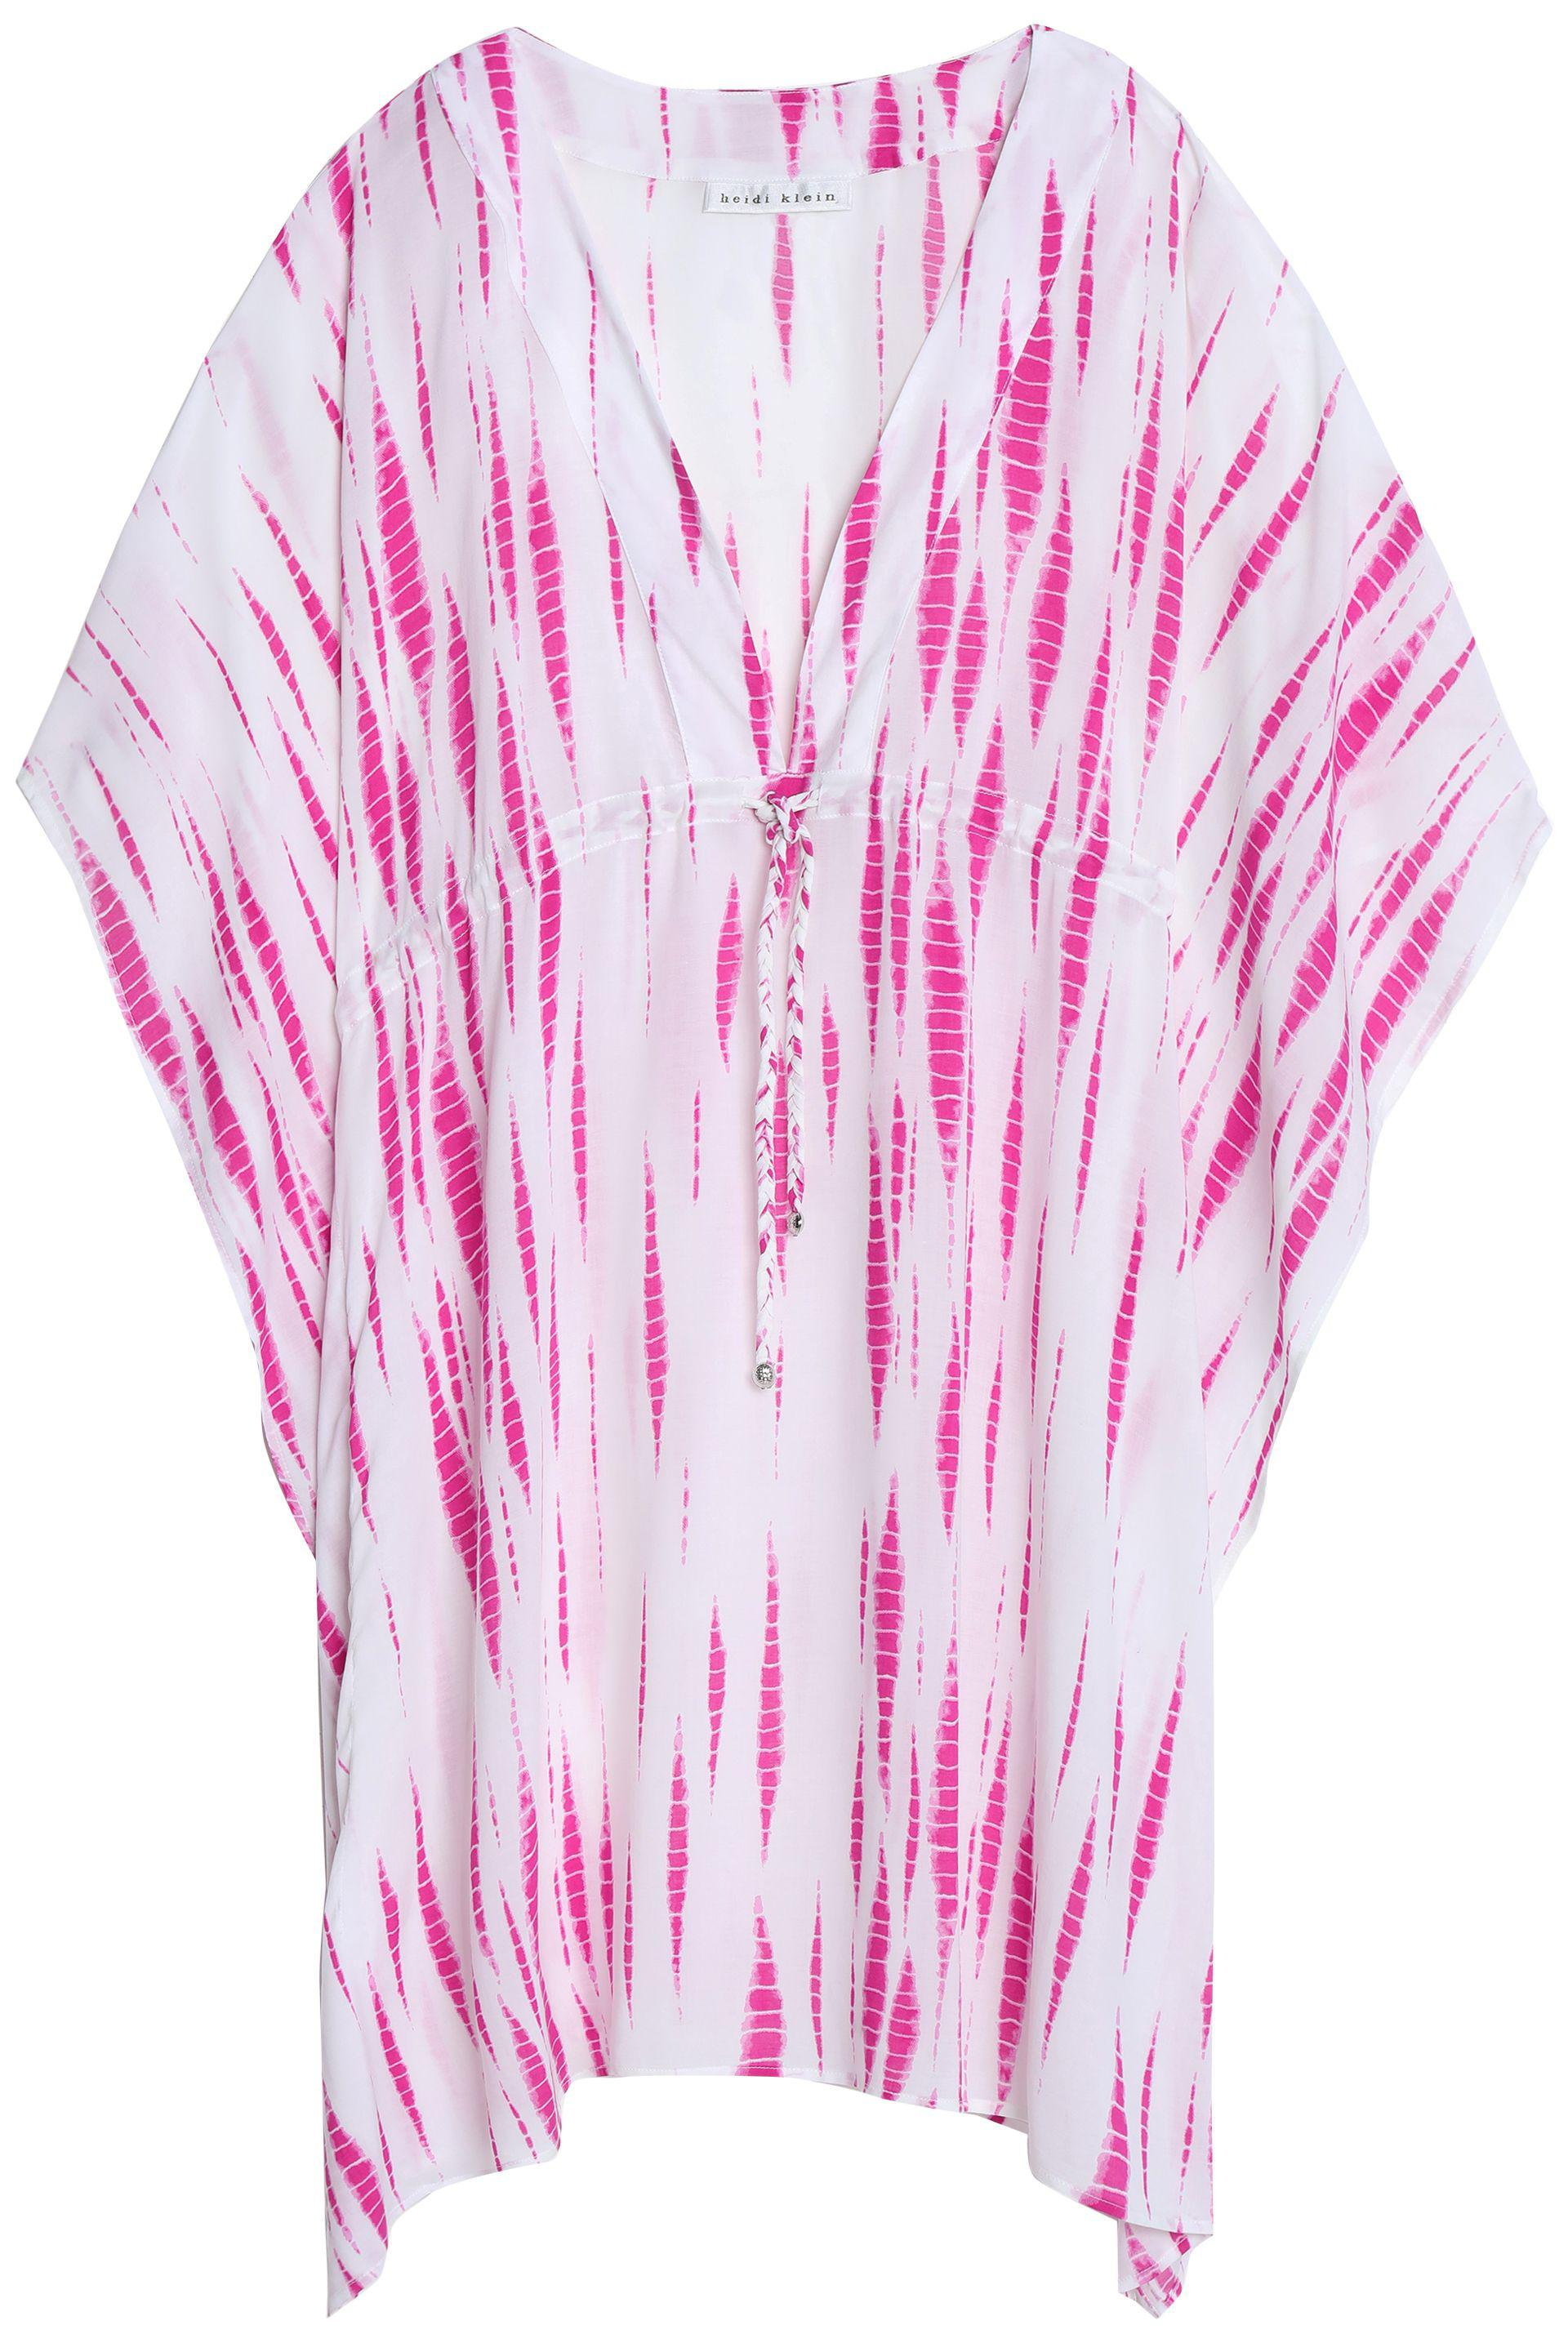 541533448267b Lyst - Heidi Klein Printed Stretch-knit Cover-up in Pink